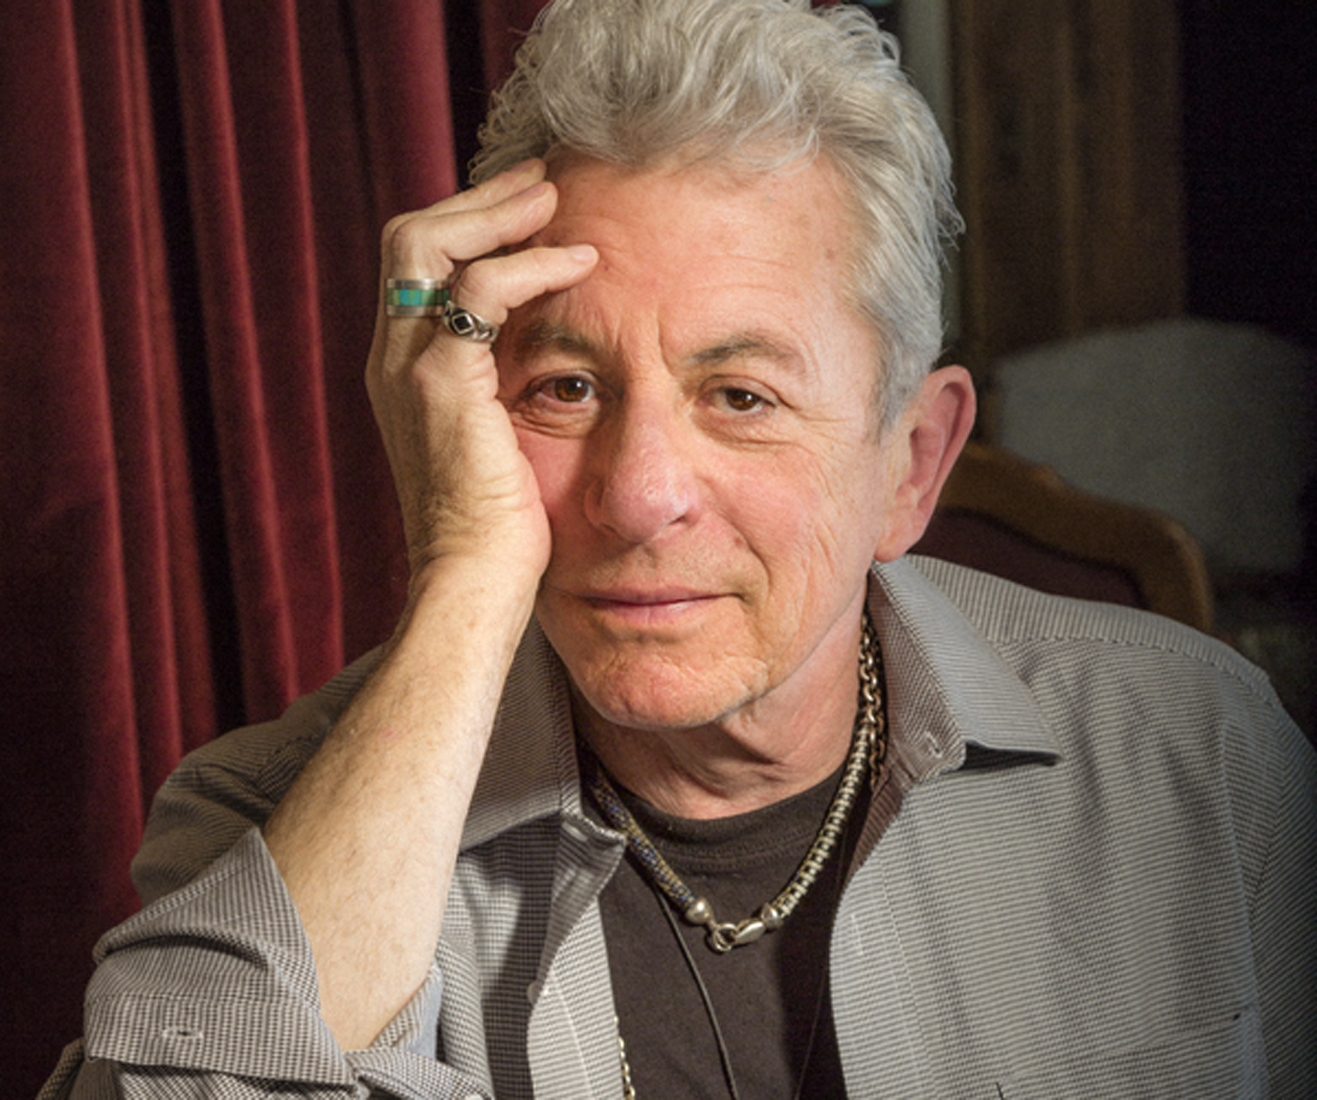 joe ely the crazy lemon at 70 lone star music magazine photo by matthew fuller